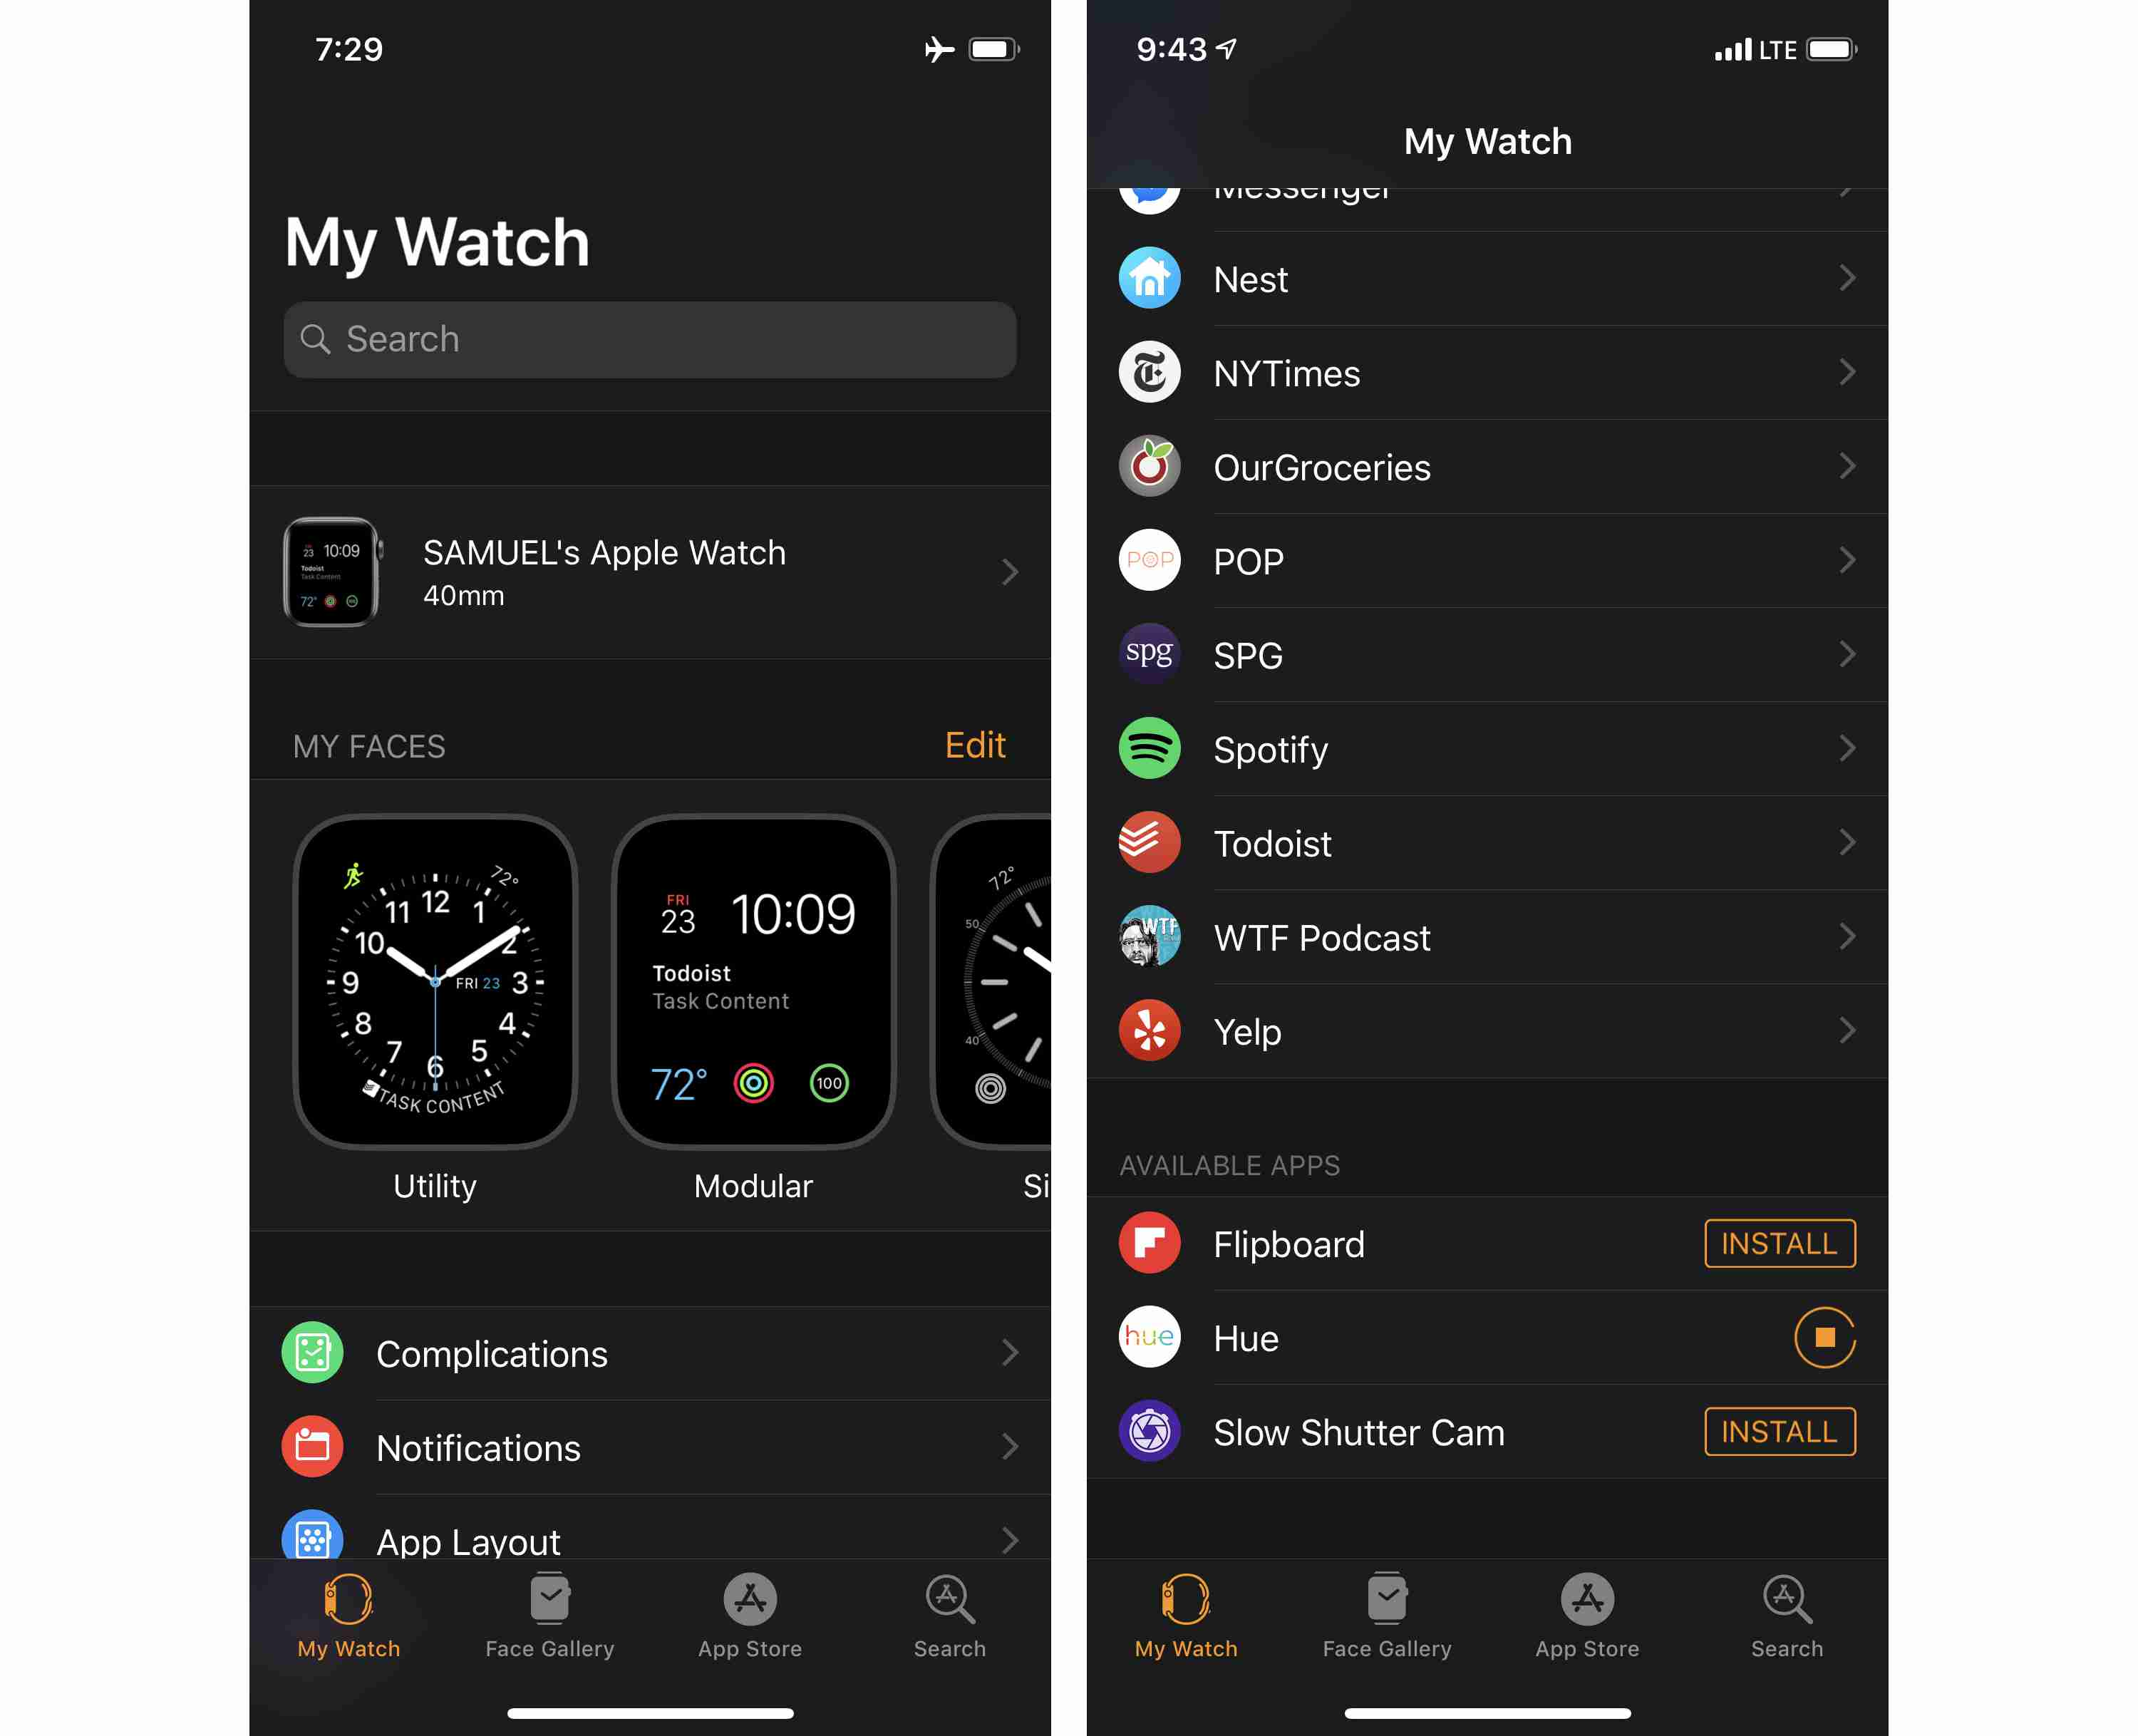 How to Add Apps to Your Apple Watch